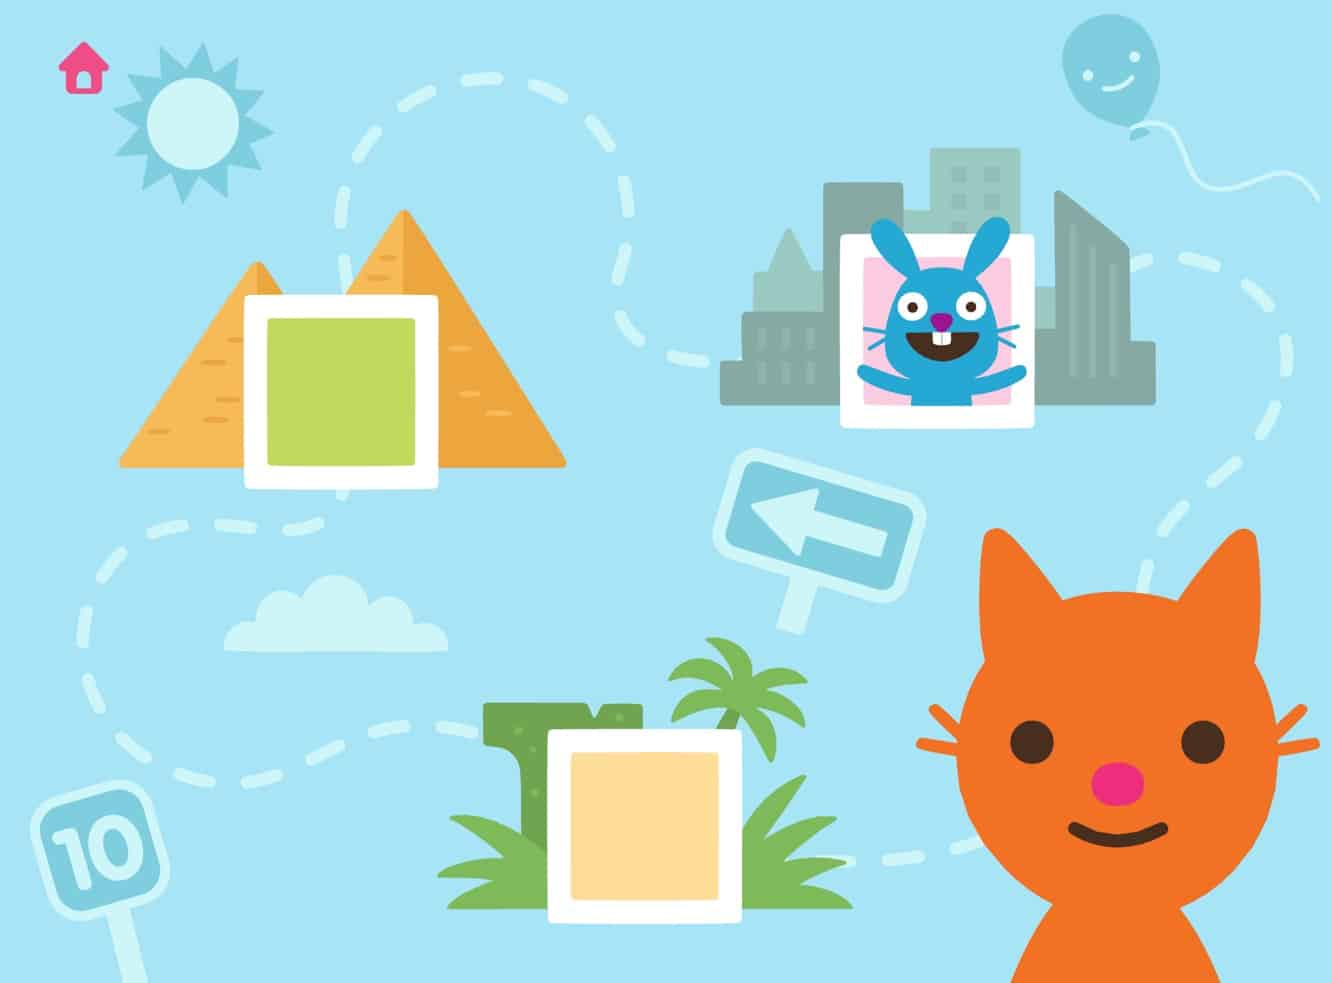 Apps of the Week: Sago Mini Road Trip, Football Manager Handheld 2015, Deliveries 6.0 + more